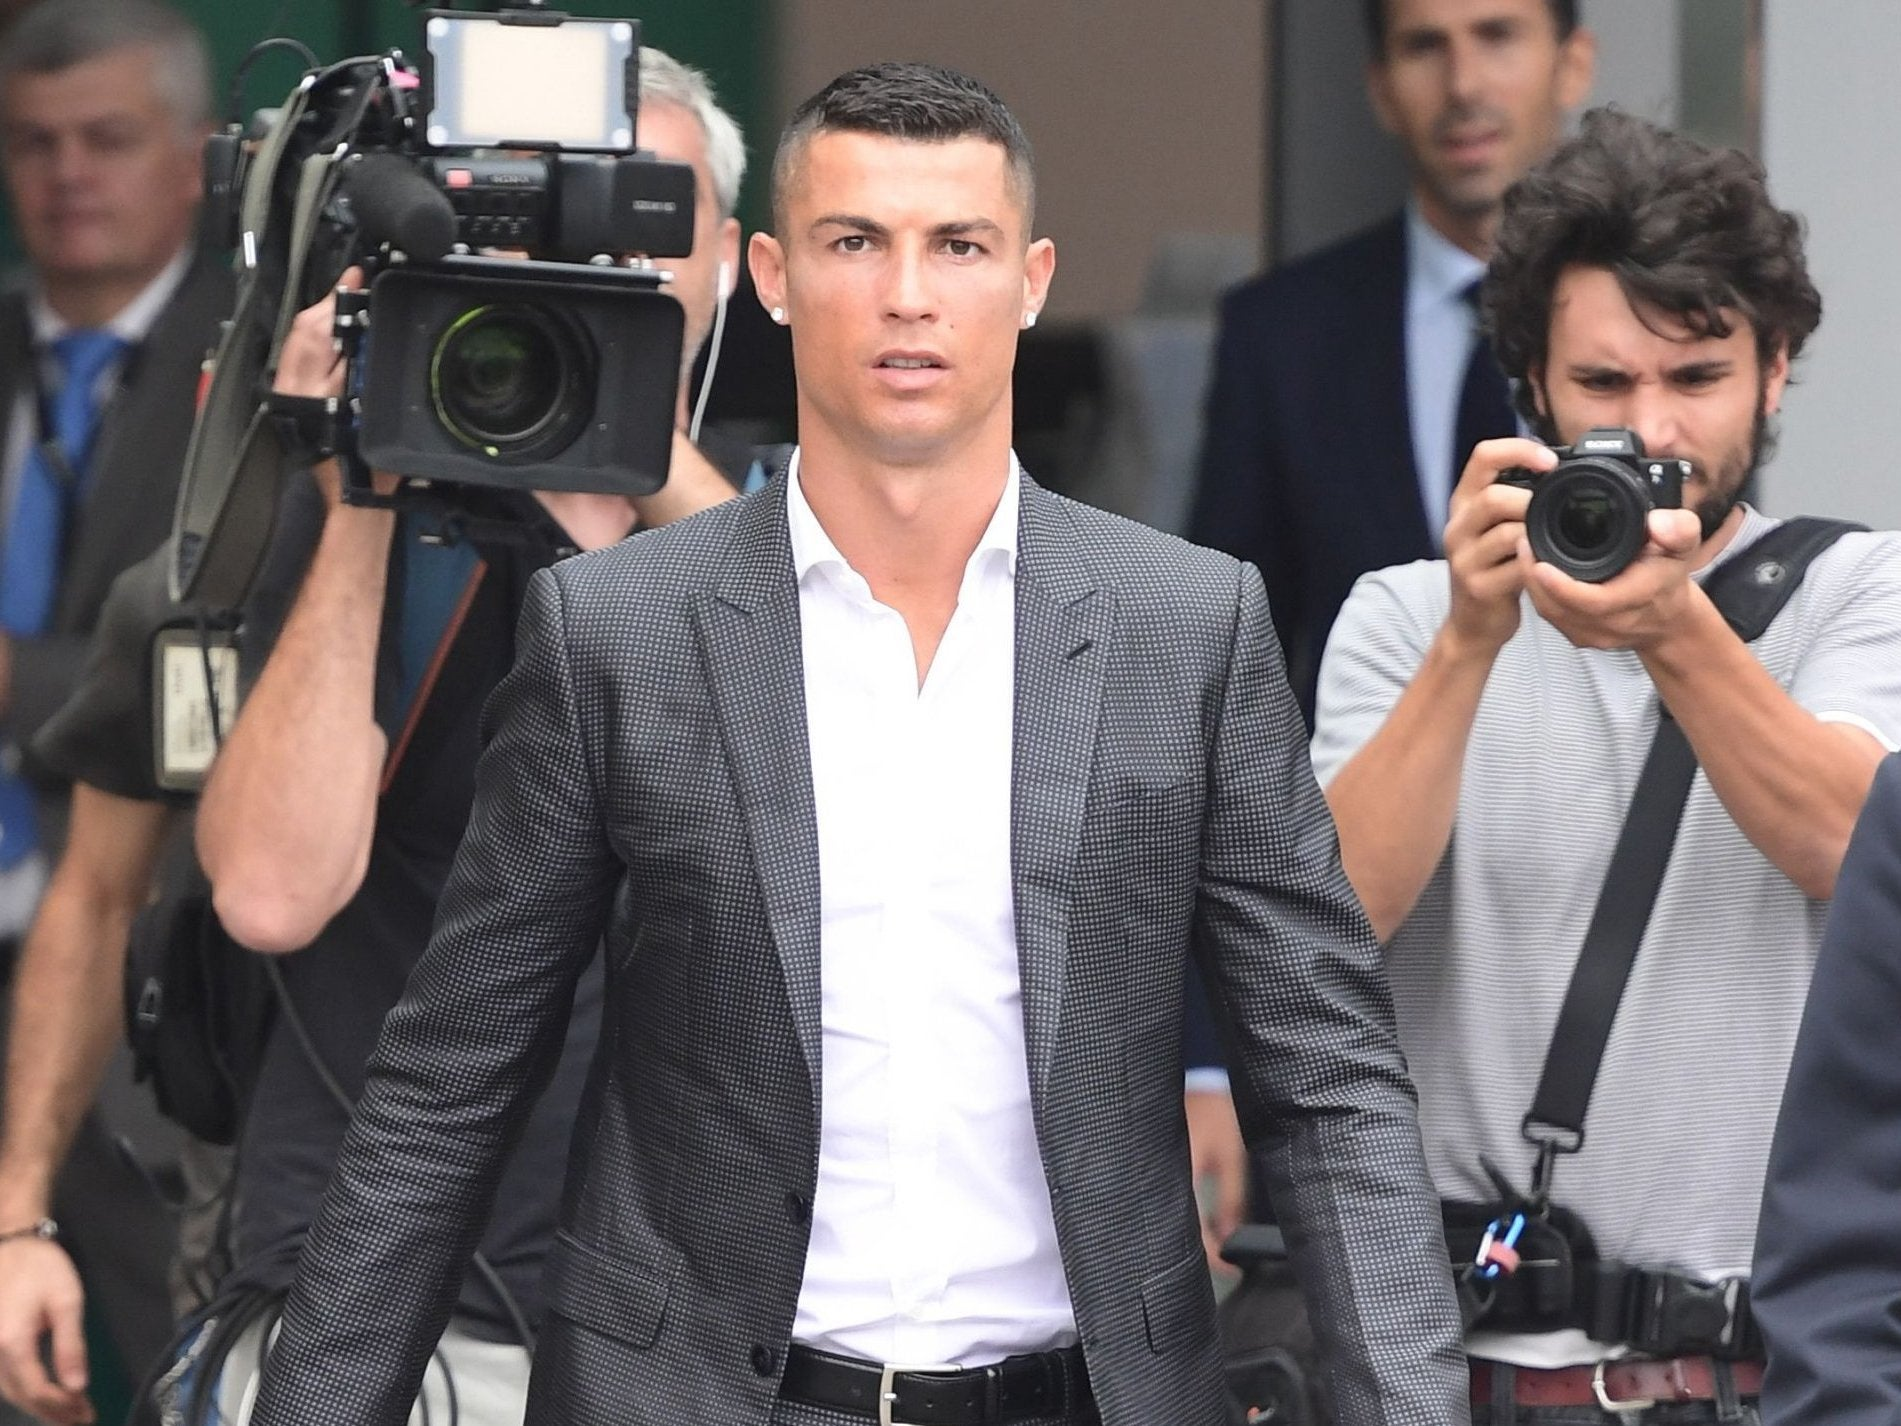 Real Madrid have made 'an historic error' by selling Cristiano Ronaldo to Juventus, claims former president Ramon Calderon